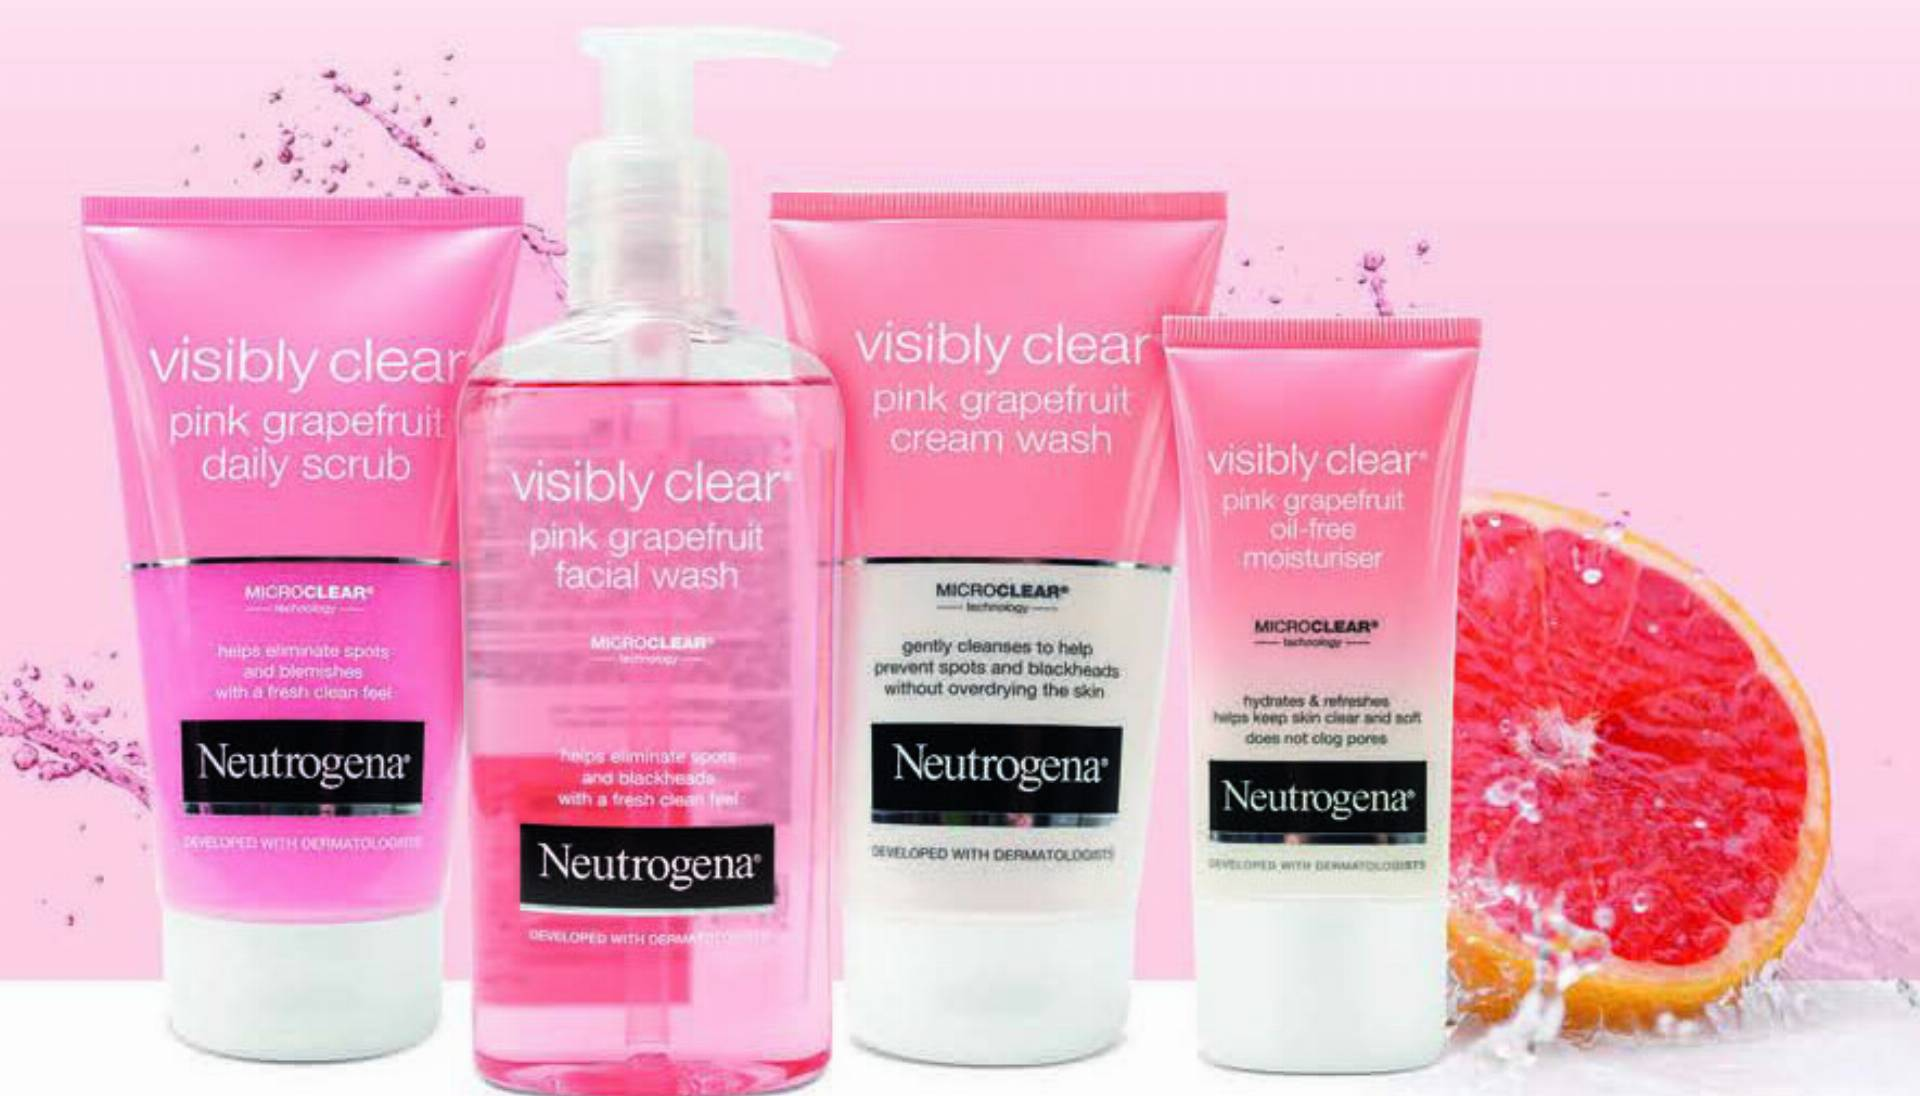 Neutrogena Visibly Clear Pink Grapefruit